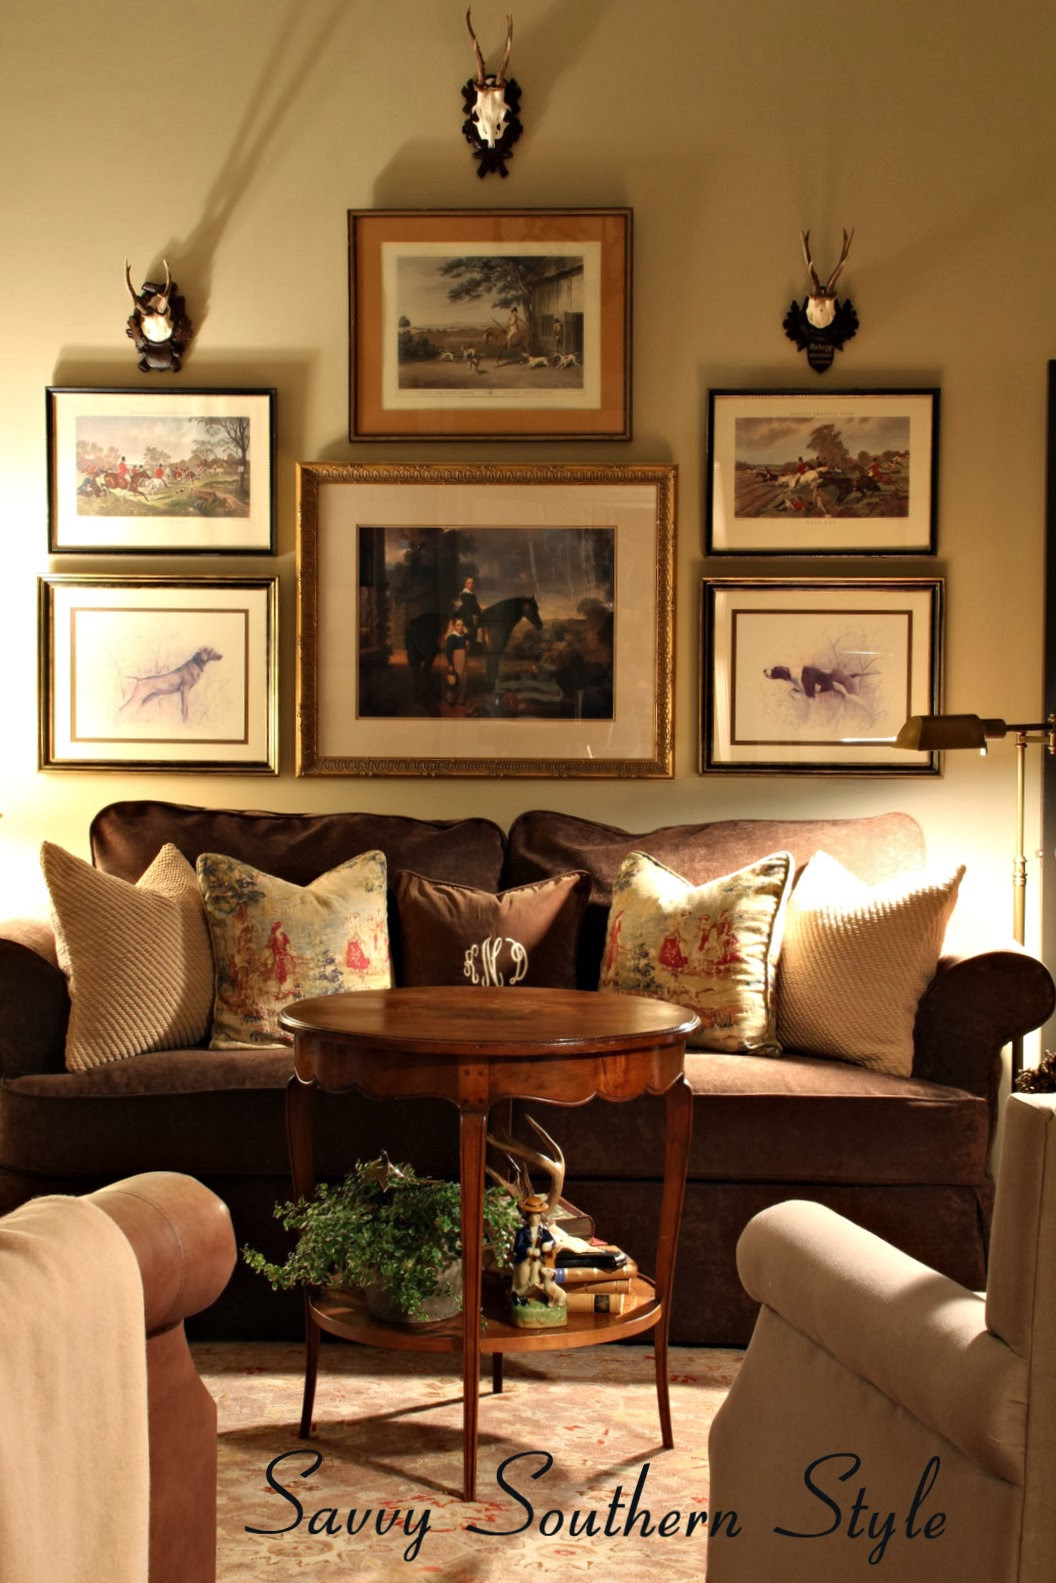 Savvy southern style decorating with antlers Southern home decor on pinterest